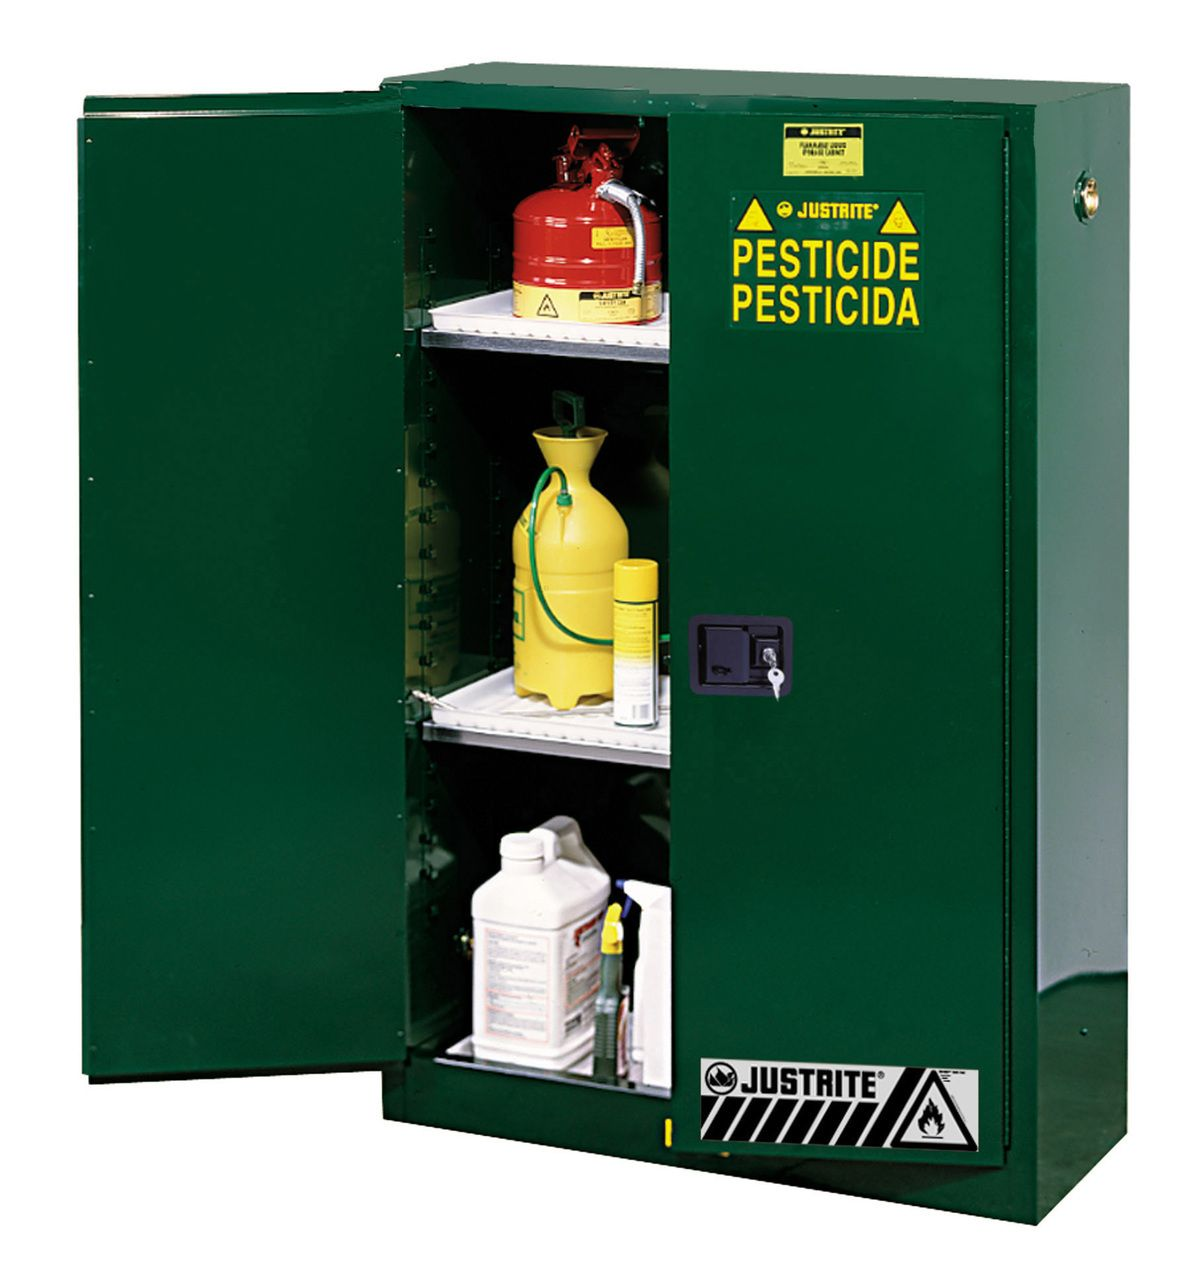 Justrite 894504 Pesticide Storage Safety 45